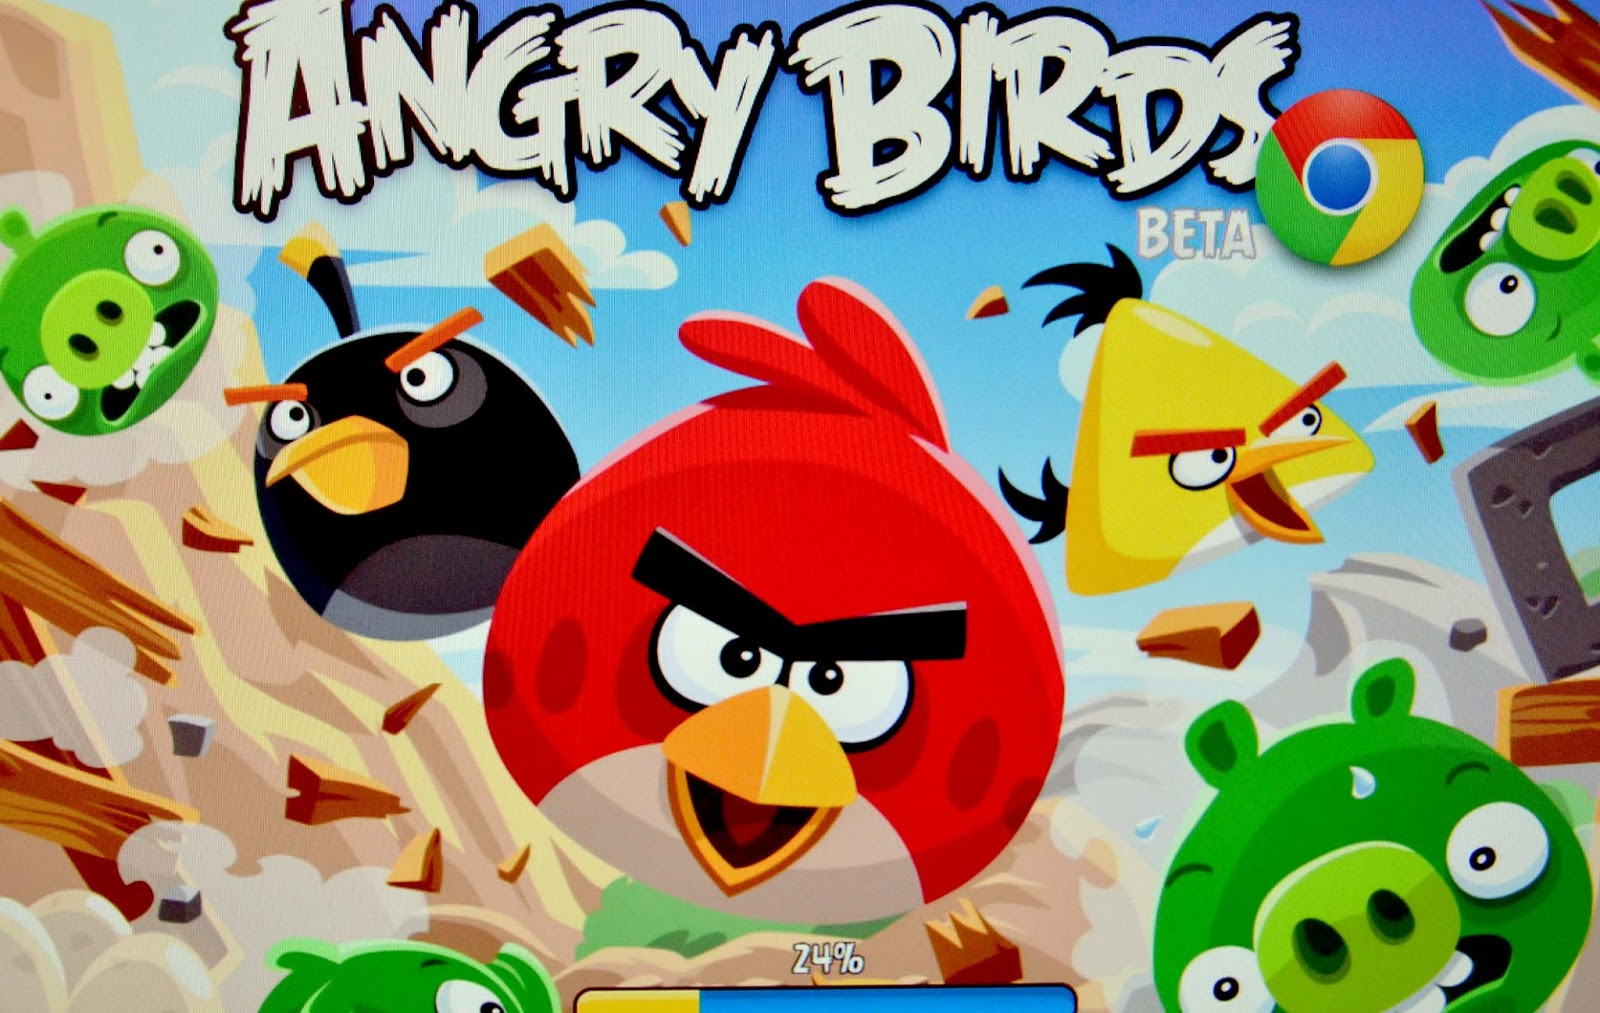 Angry birds wallpapers hd high defination wallpapers angry birds wallpapers hd voltagebd Images